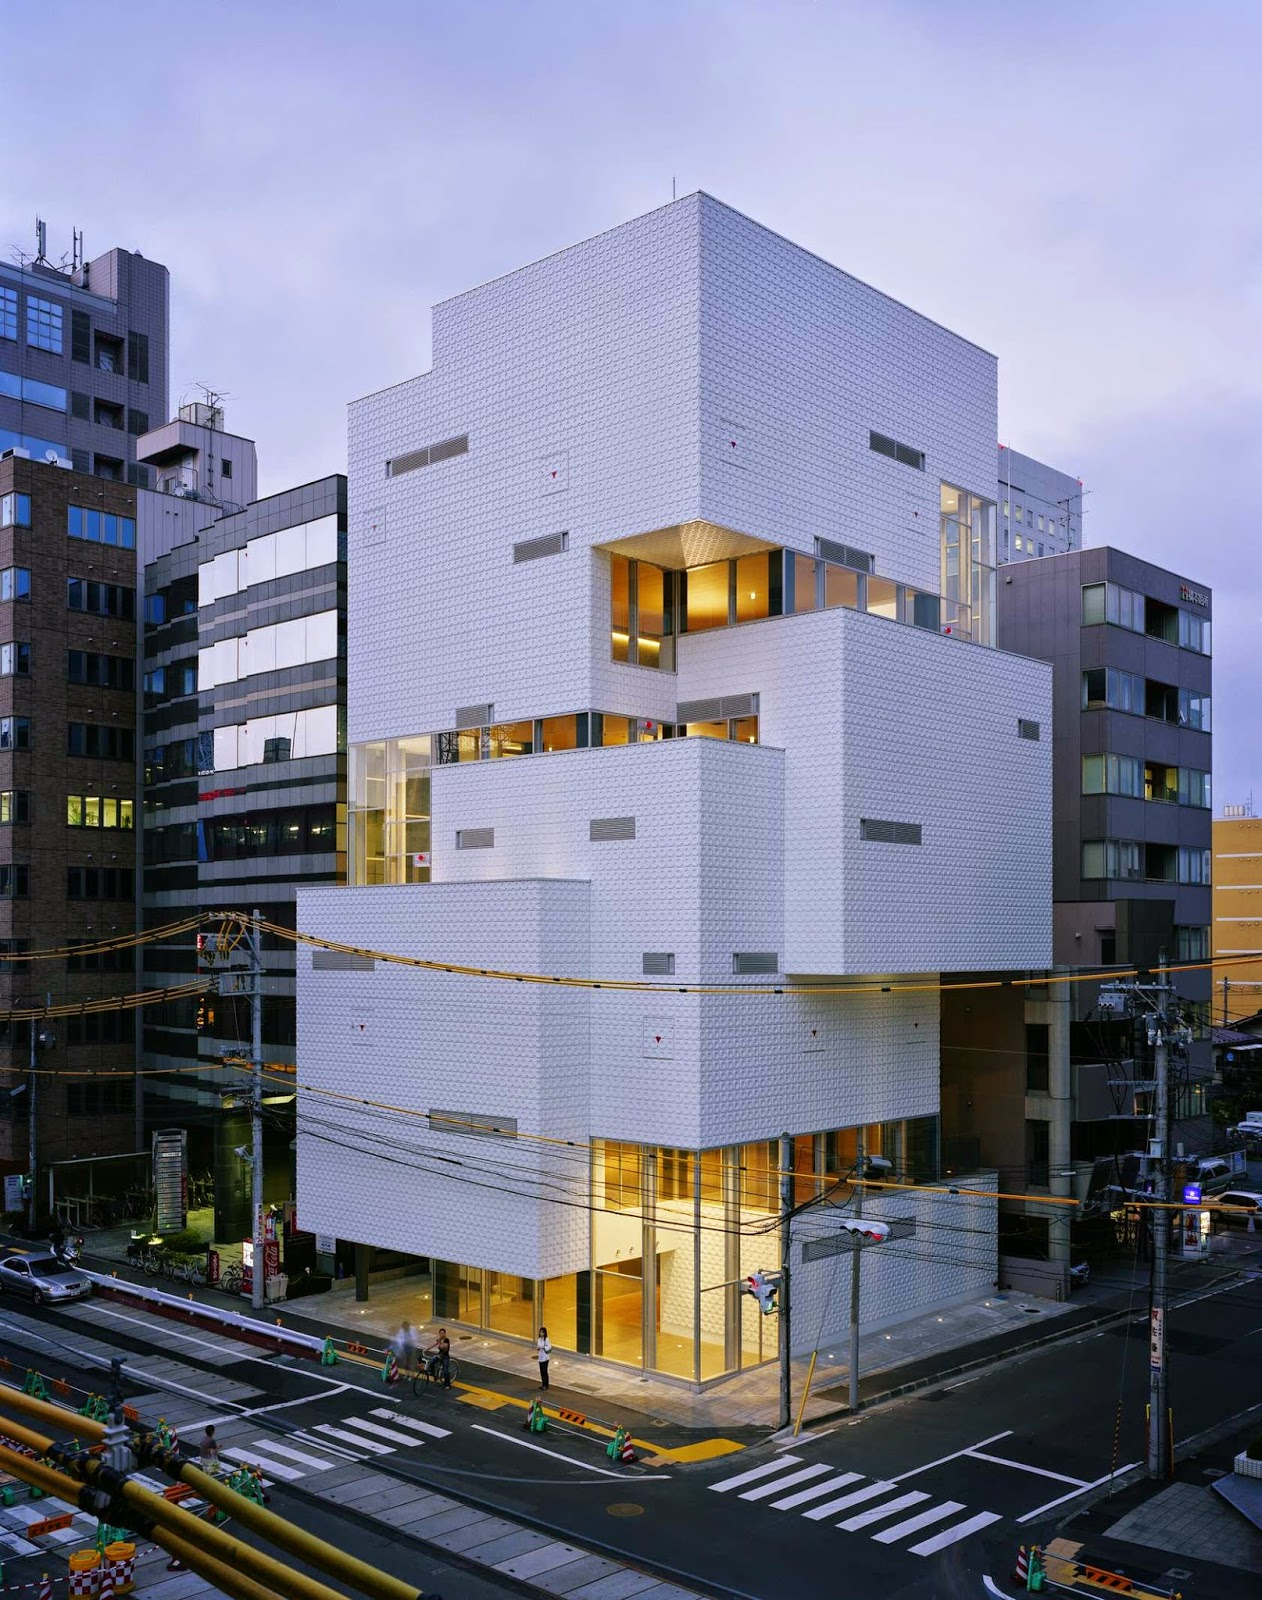 Ftown building architect atelier hitoshi abe japan for Architecture moderne